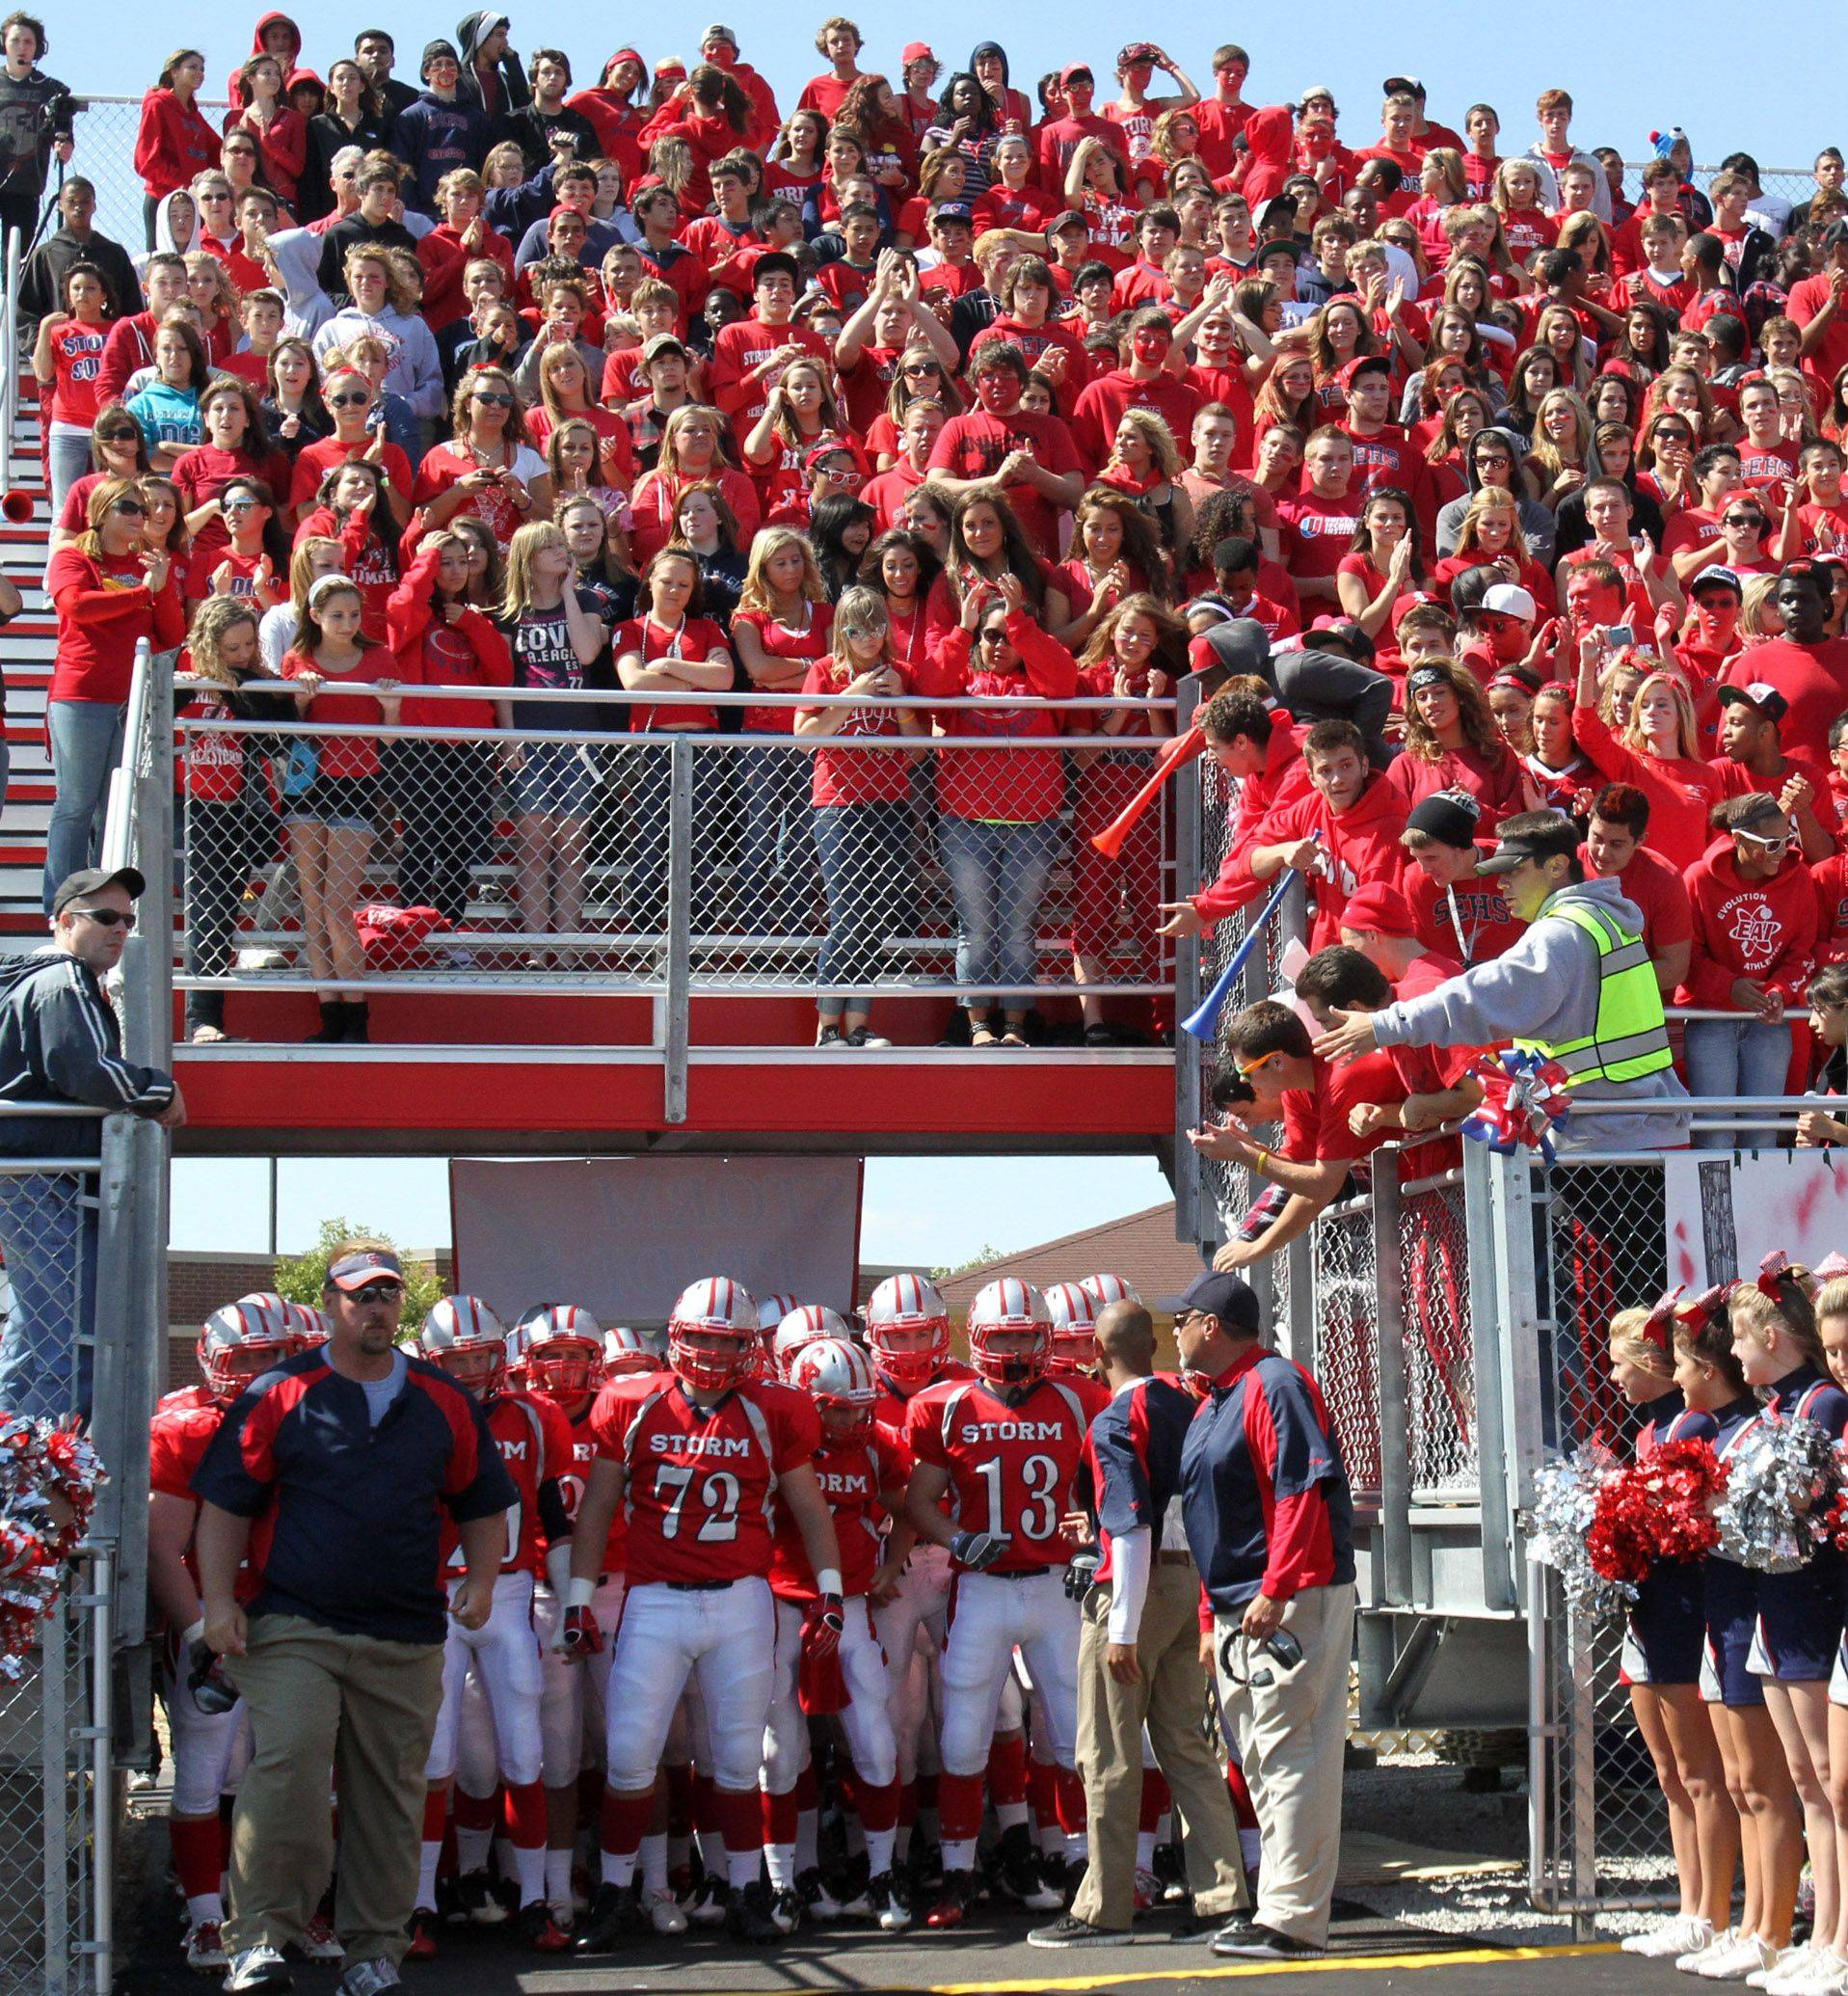 South Elgin's football team takes the field through the tunnel to play Metea Valley Saturday at the new South Elgin Stadium.